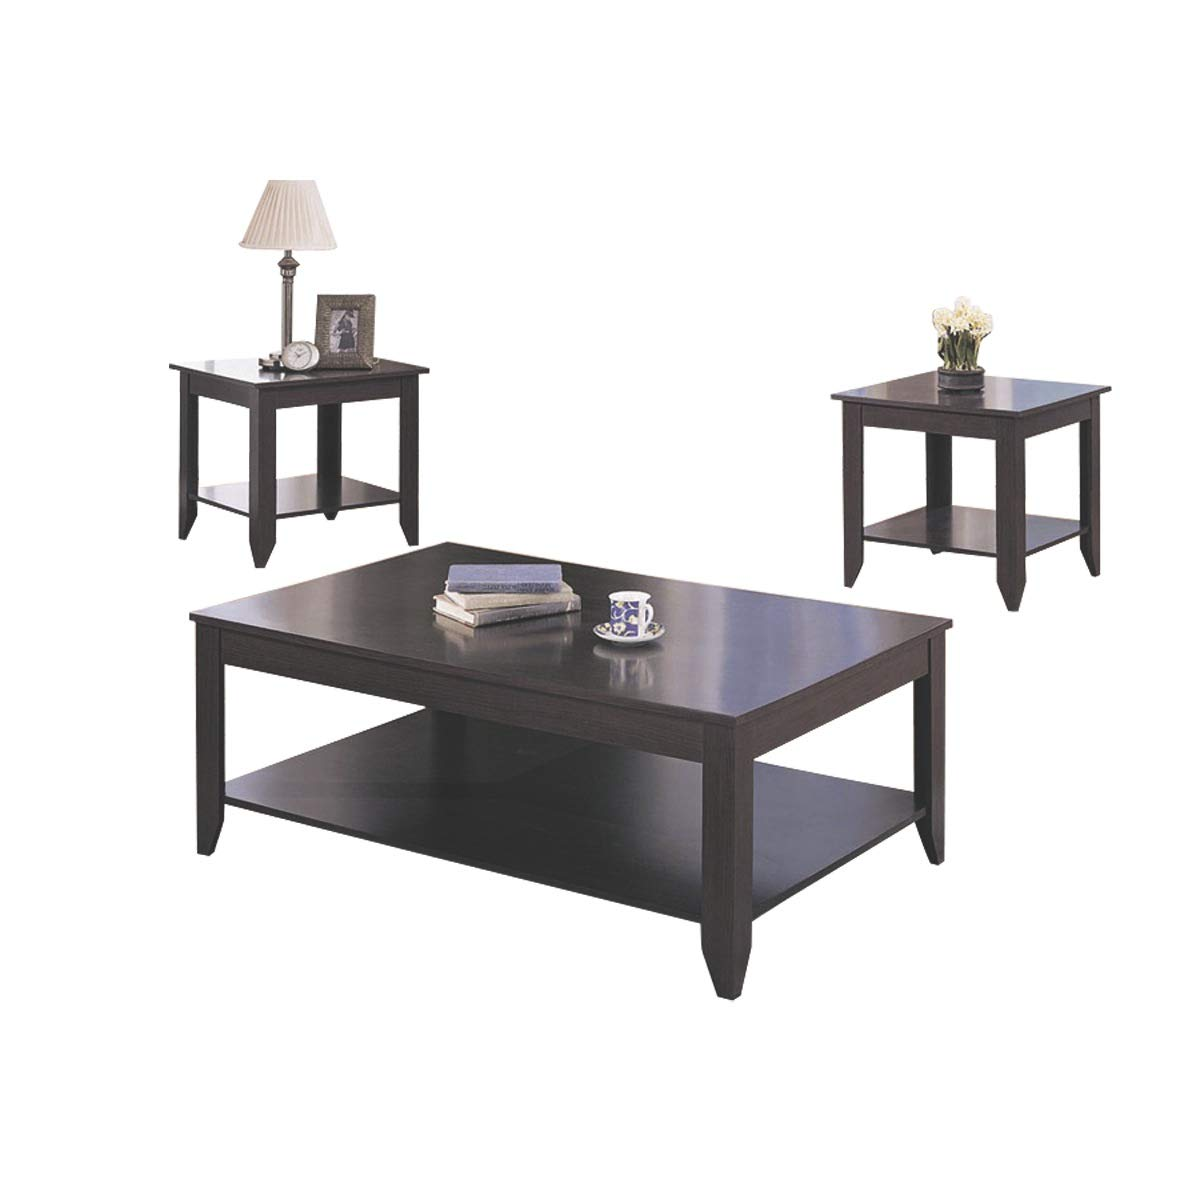 Coaster Home Furnishings 3-piece Occasional Table Set with Shelves Cappuccino by Coaster Home Furnishings